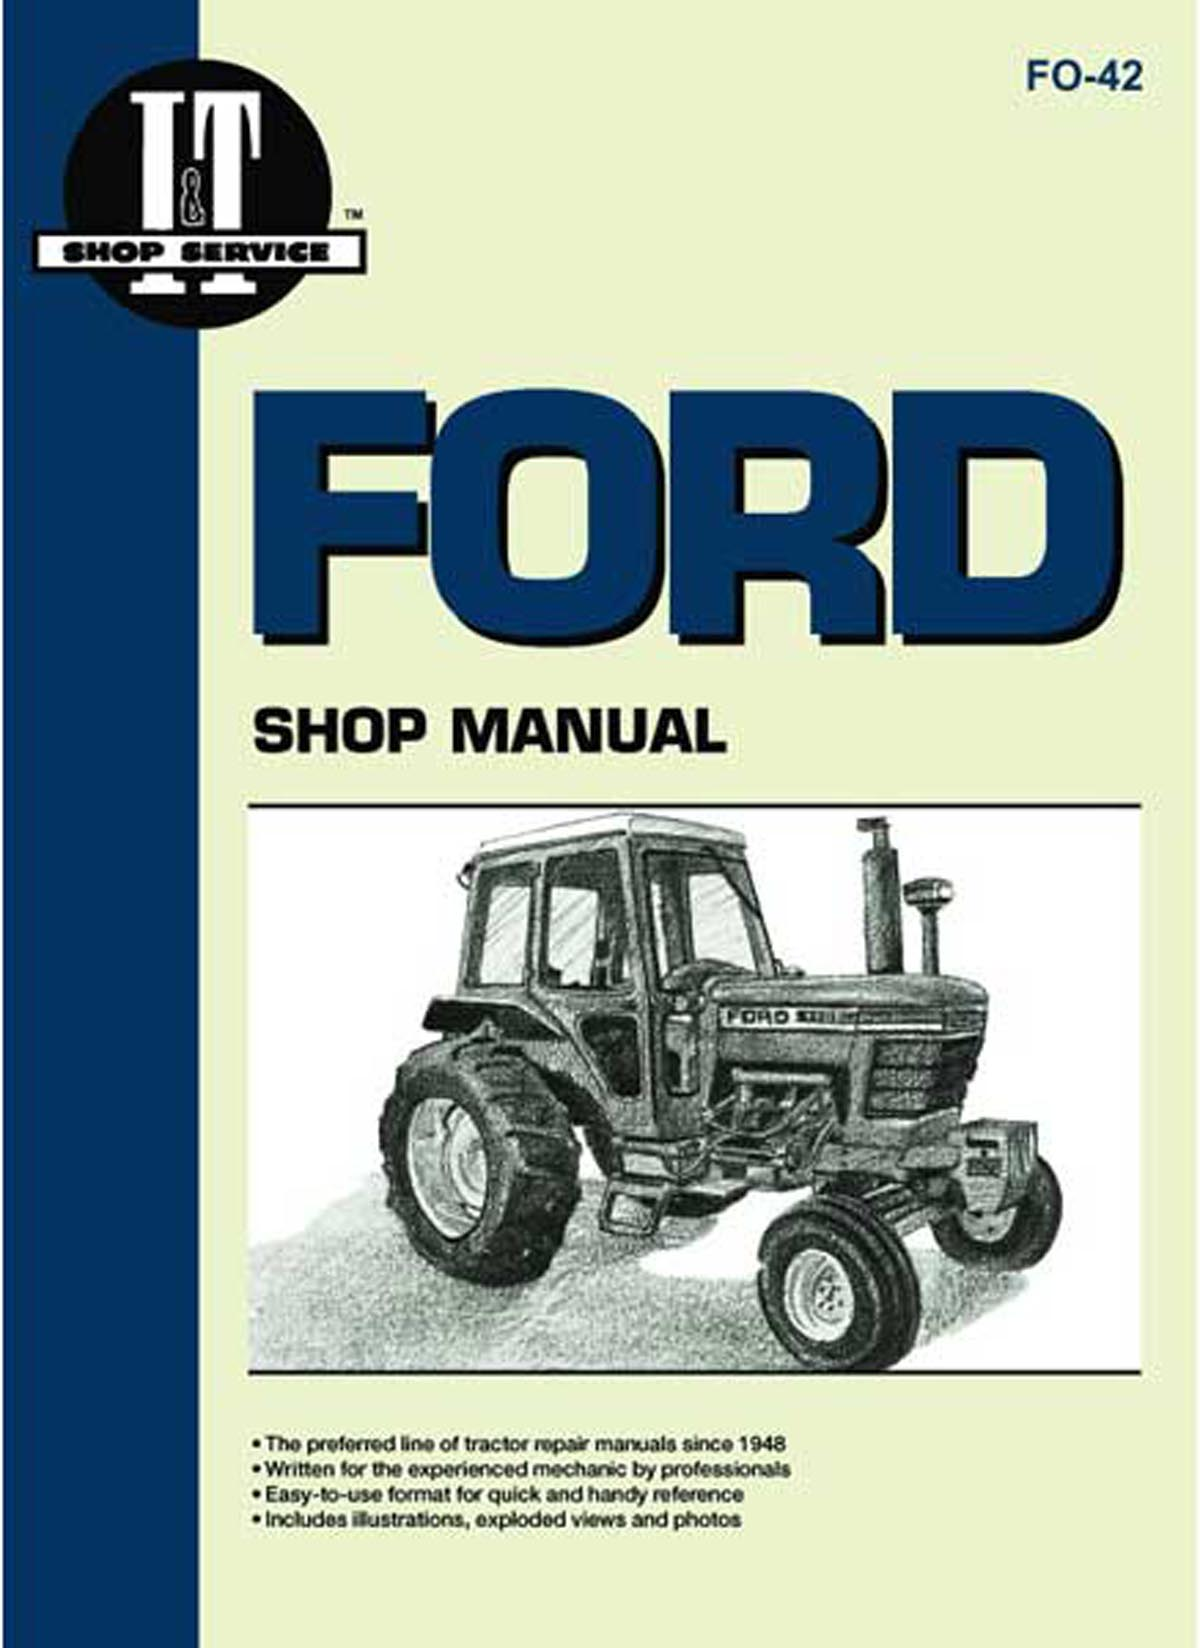 Ford 6610 tractor parts manual